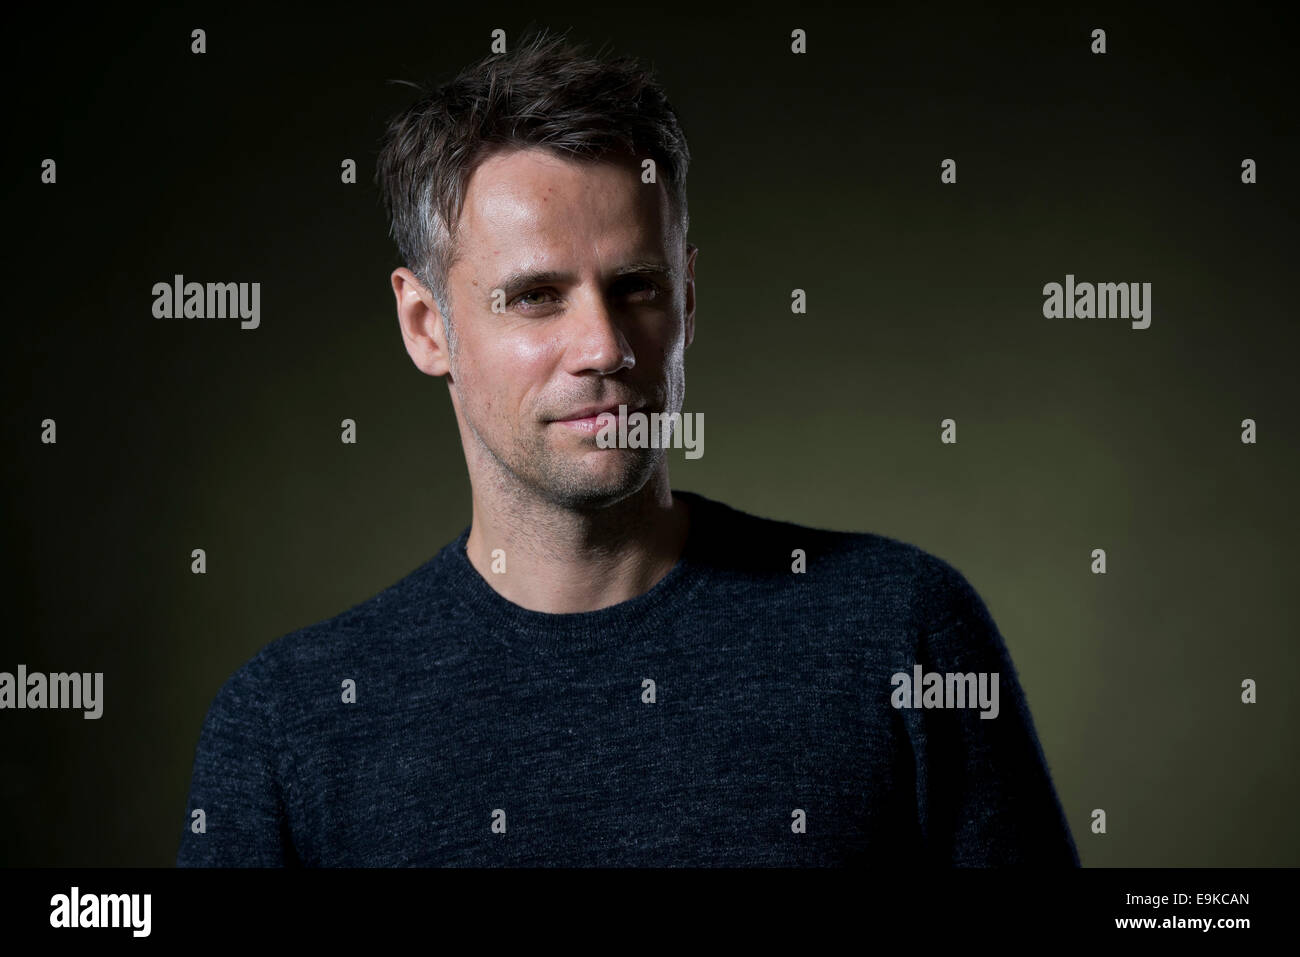 British television and radio presenter Richard Bacon appears at the Edinburgh International Book Festival. - Stock Image